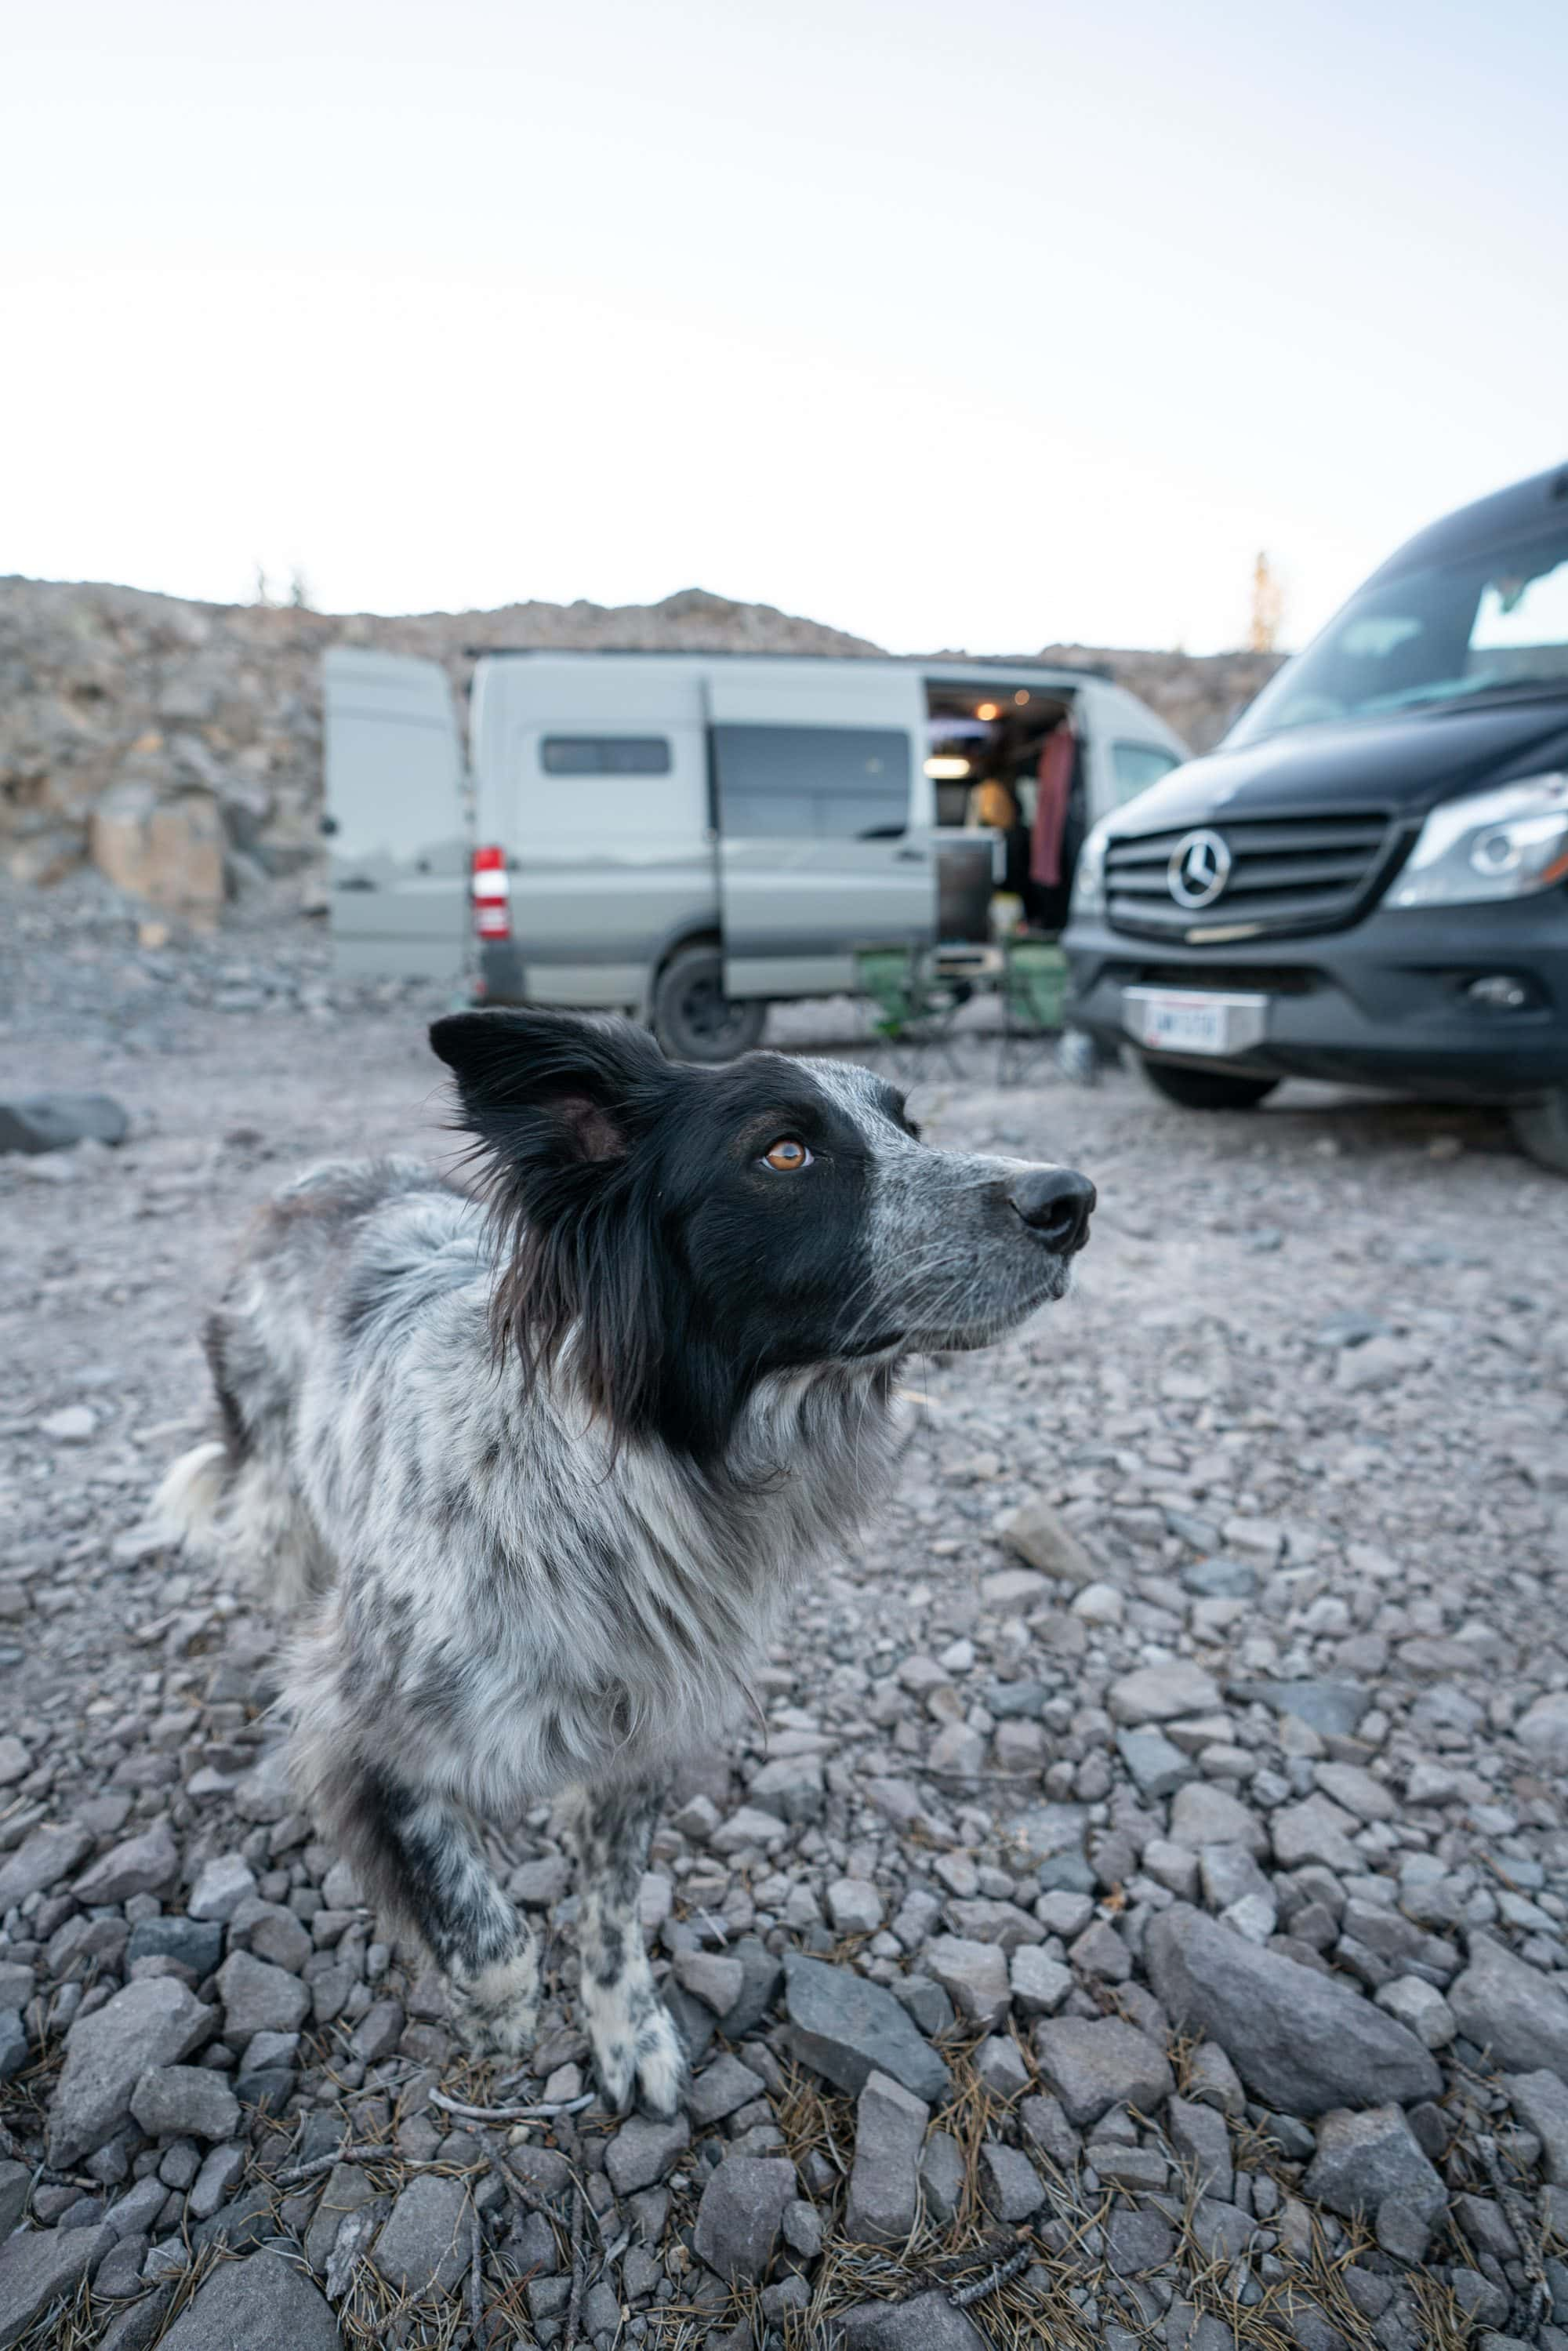 Wondering what van life with a dog is like? Here is my best advice for taking care of your pup & finding dog-friendly activities while living on the road.